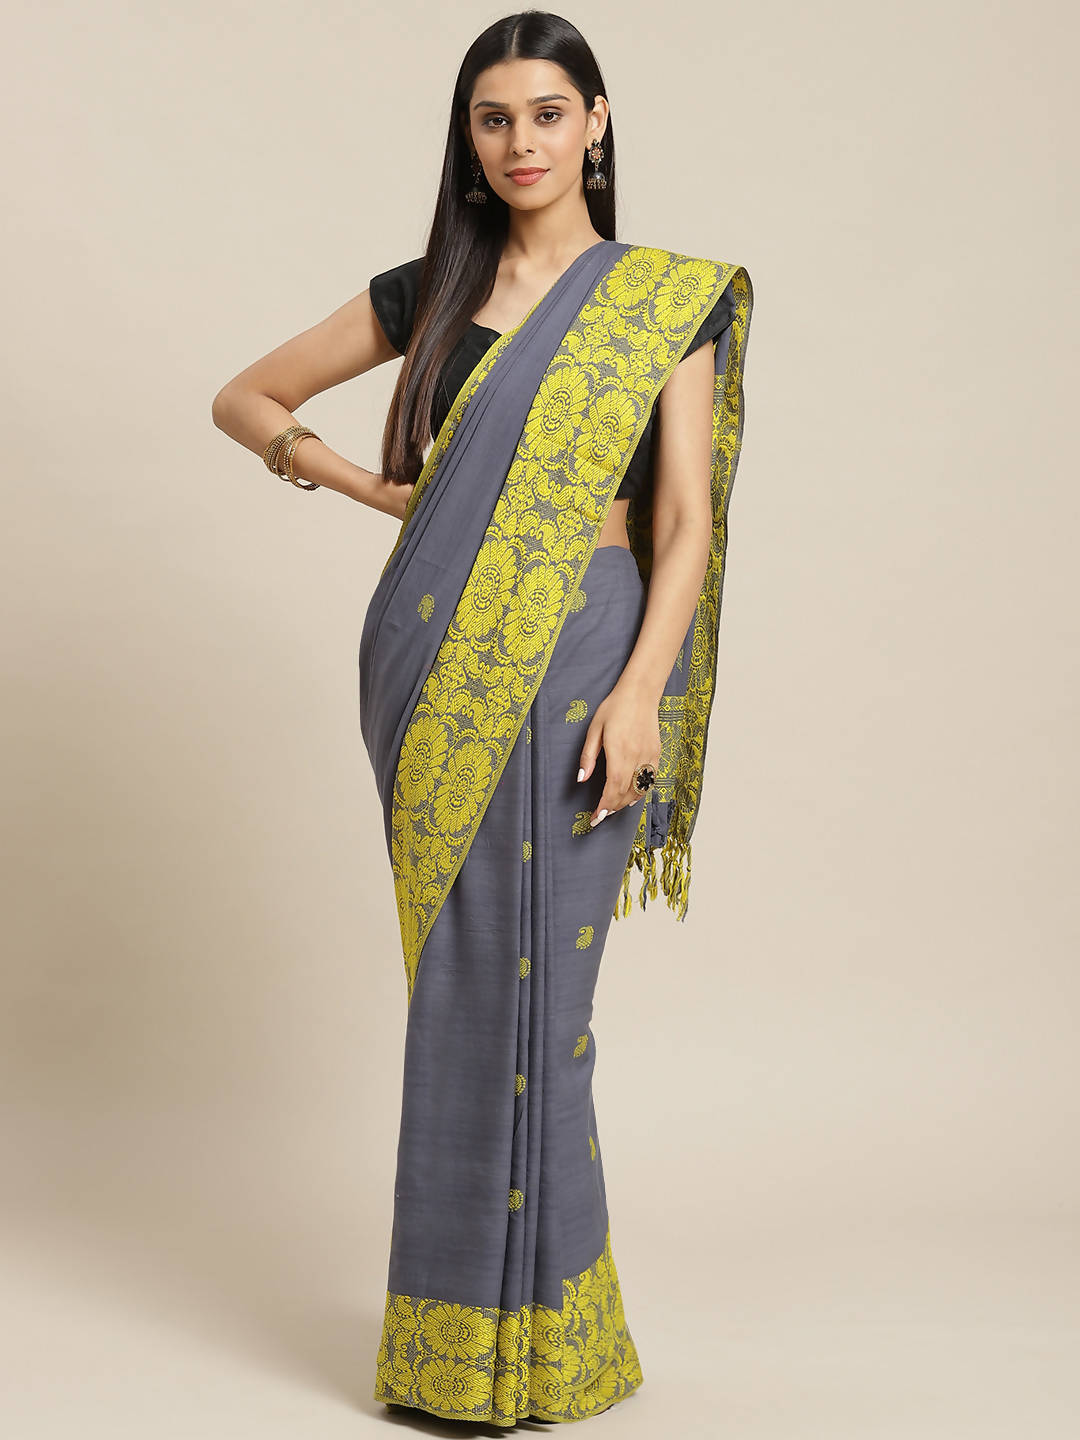 Biswa bangla handwoven grey & yellow dokhna cotton saree